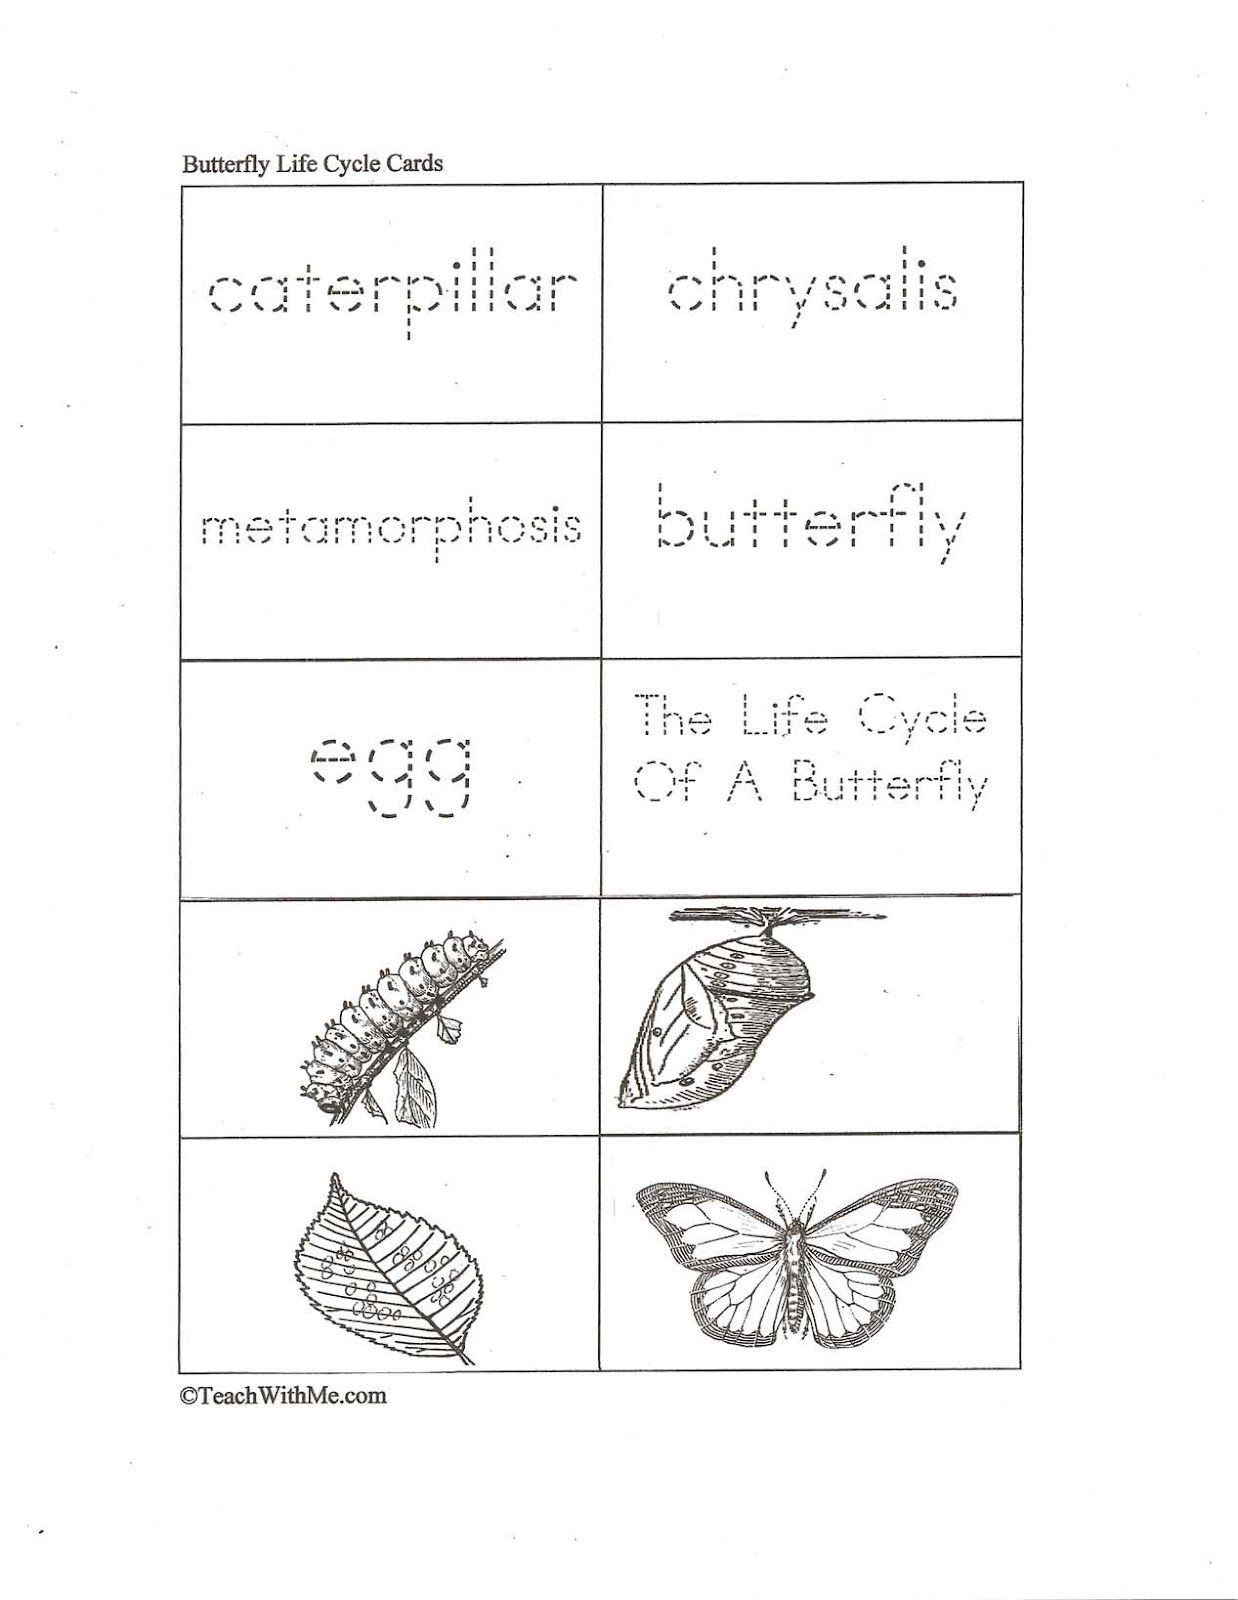 worksheet Life Cycle Of Butterfly Worksheet traceable butterfly life cycle cards cards